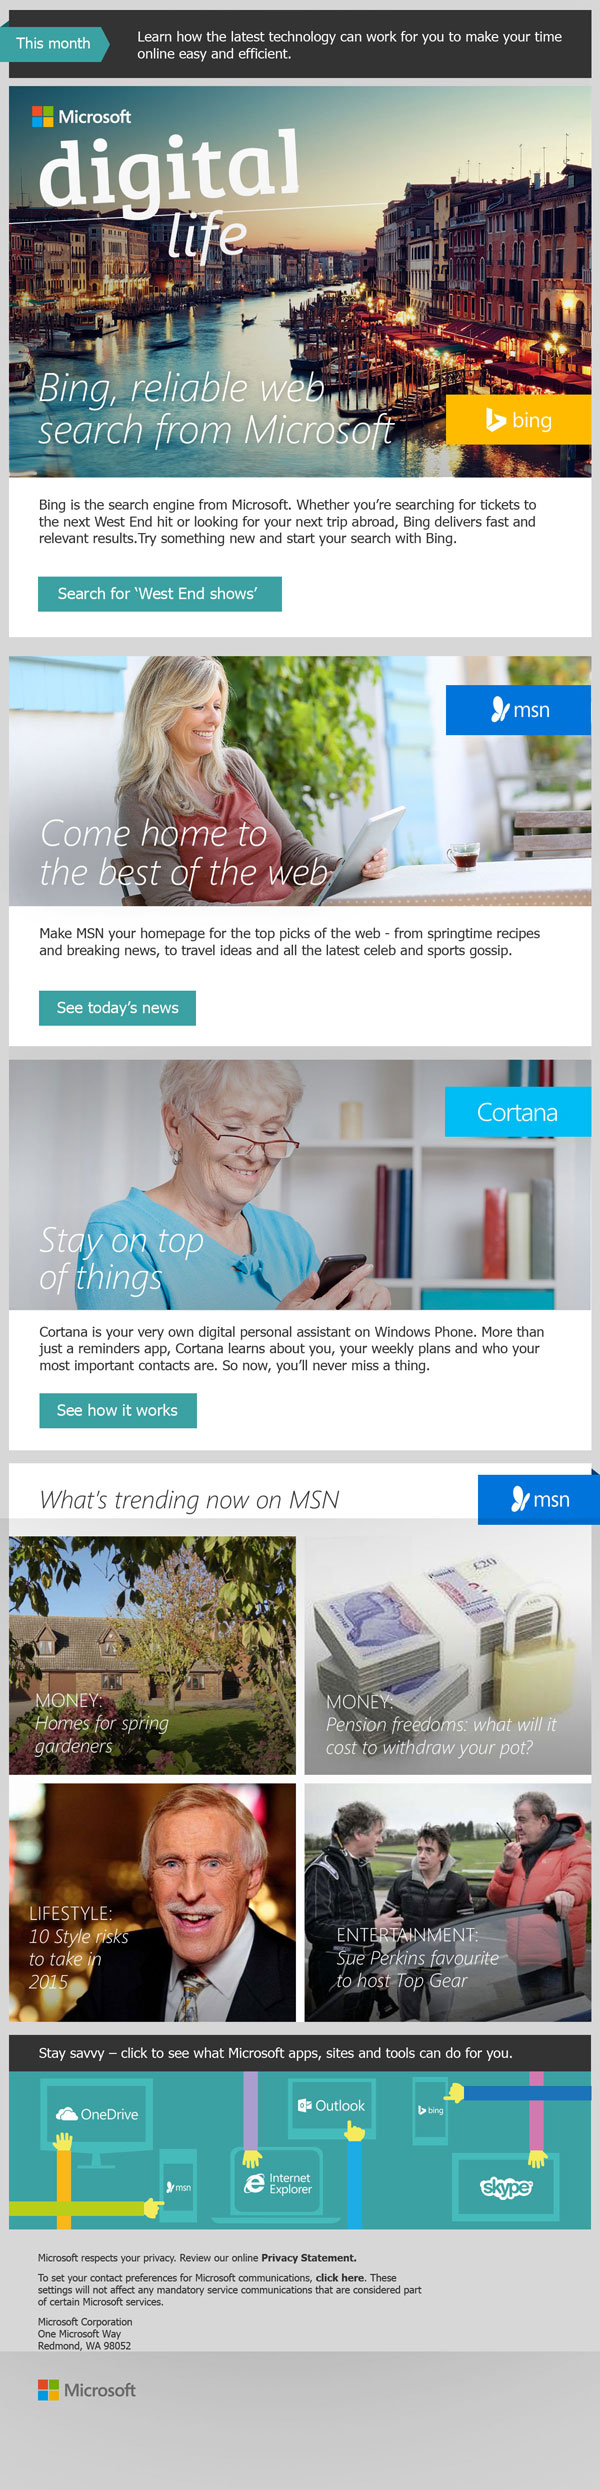 Microsoft - Newsletter Digital Life - Silver Surfers